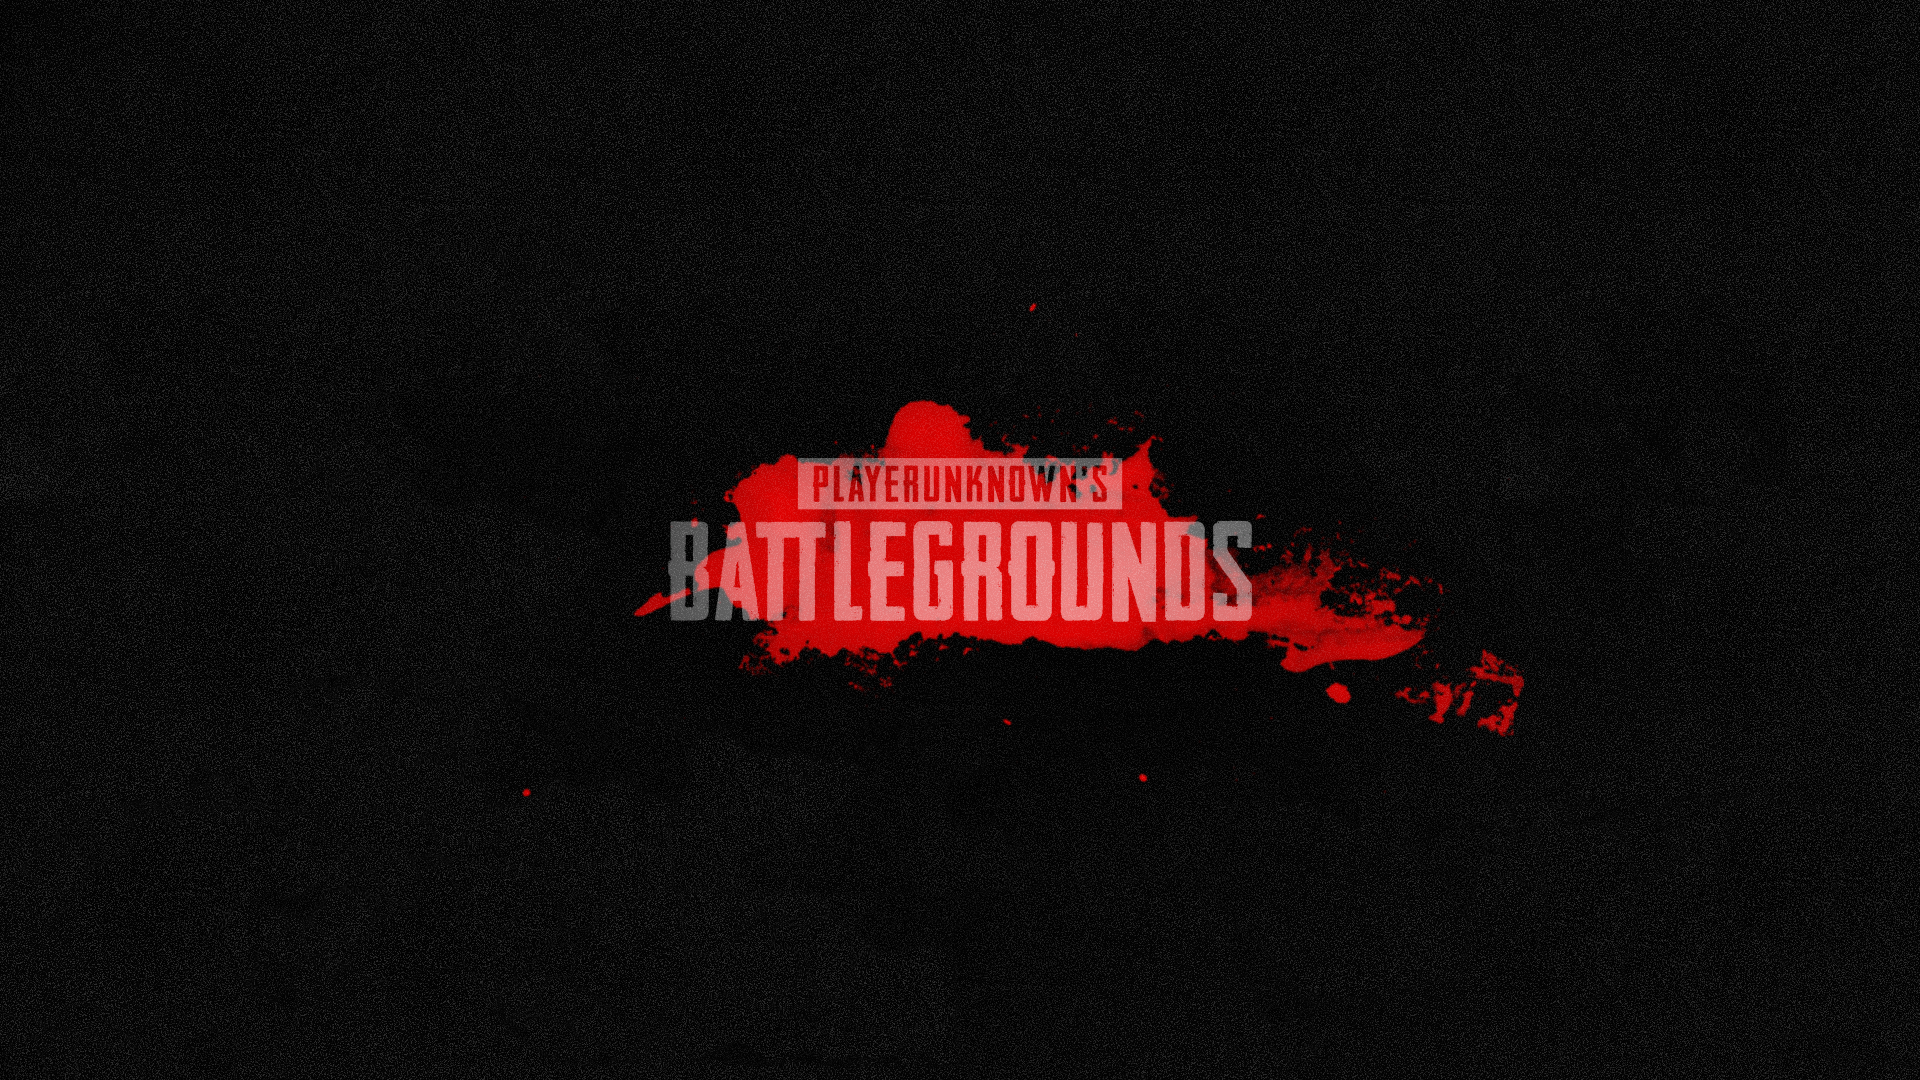 891412 - Player Unknown's Battlegrounds (PUBG) 4K red logo - Pubg wallpaper phone, pubg wallpaper iphone, pubg wallpaper 1920x1080 hd, pubg hd wallpapers, pubg 4k wallpapers, pubg 4k red logo, Player Unknown's Battlegrounds 4k wallpapers